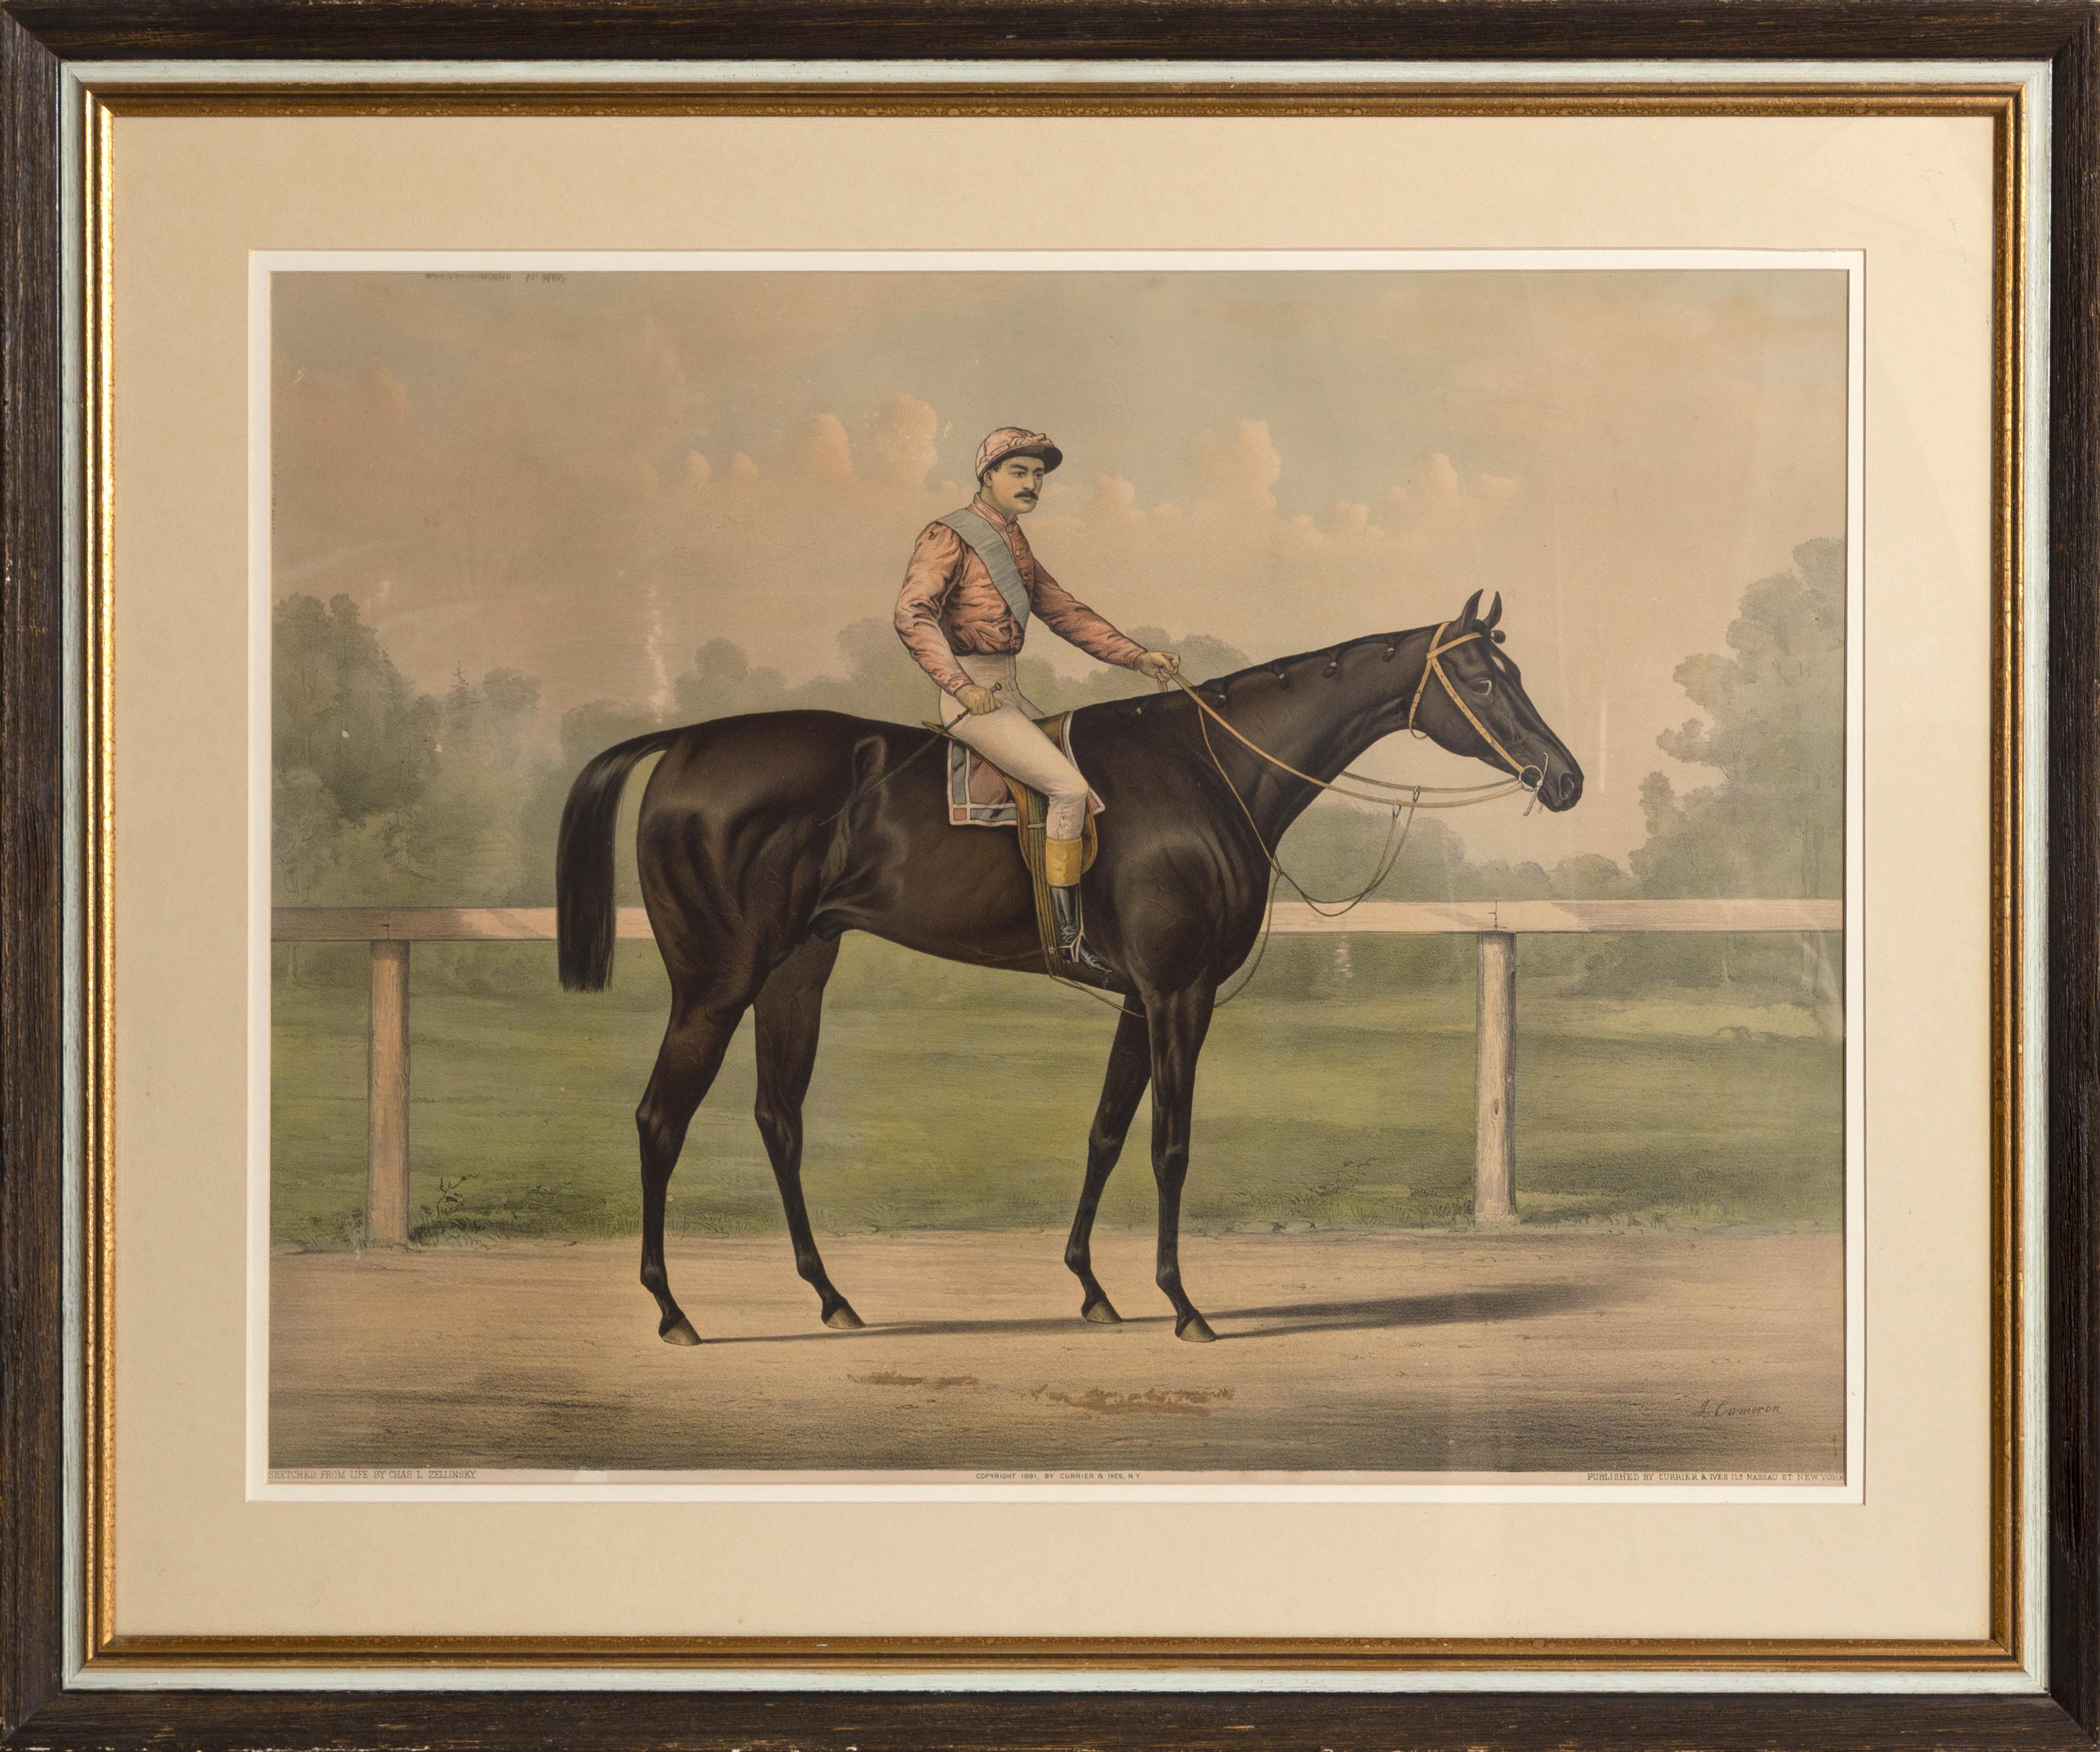 The Grand Racer Kingston by Spendthrift, by Currier & Ives 1891